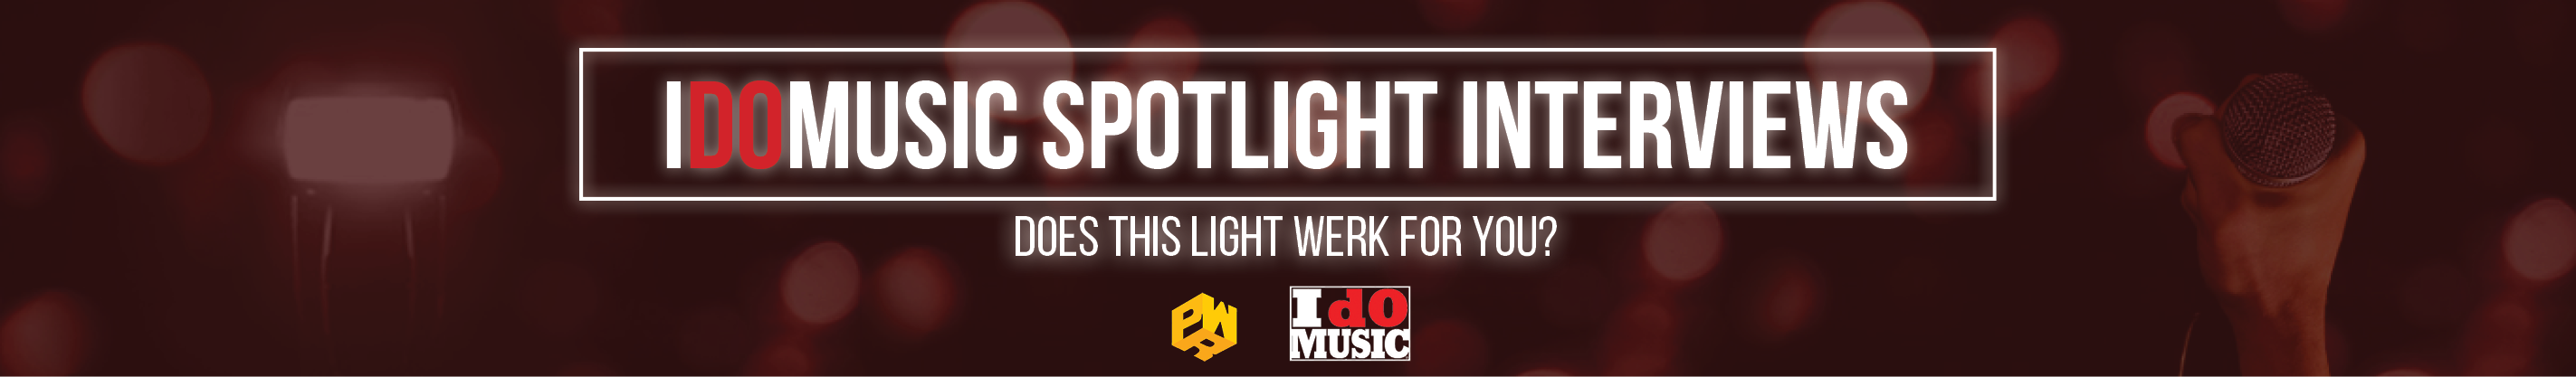 IdOMUSIC Spotlight Interview Banner 1